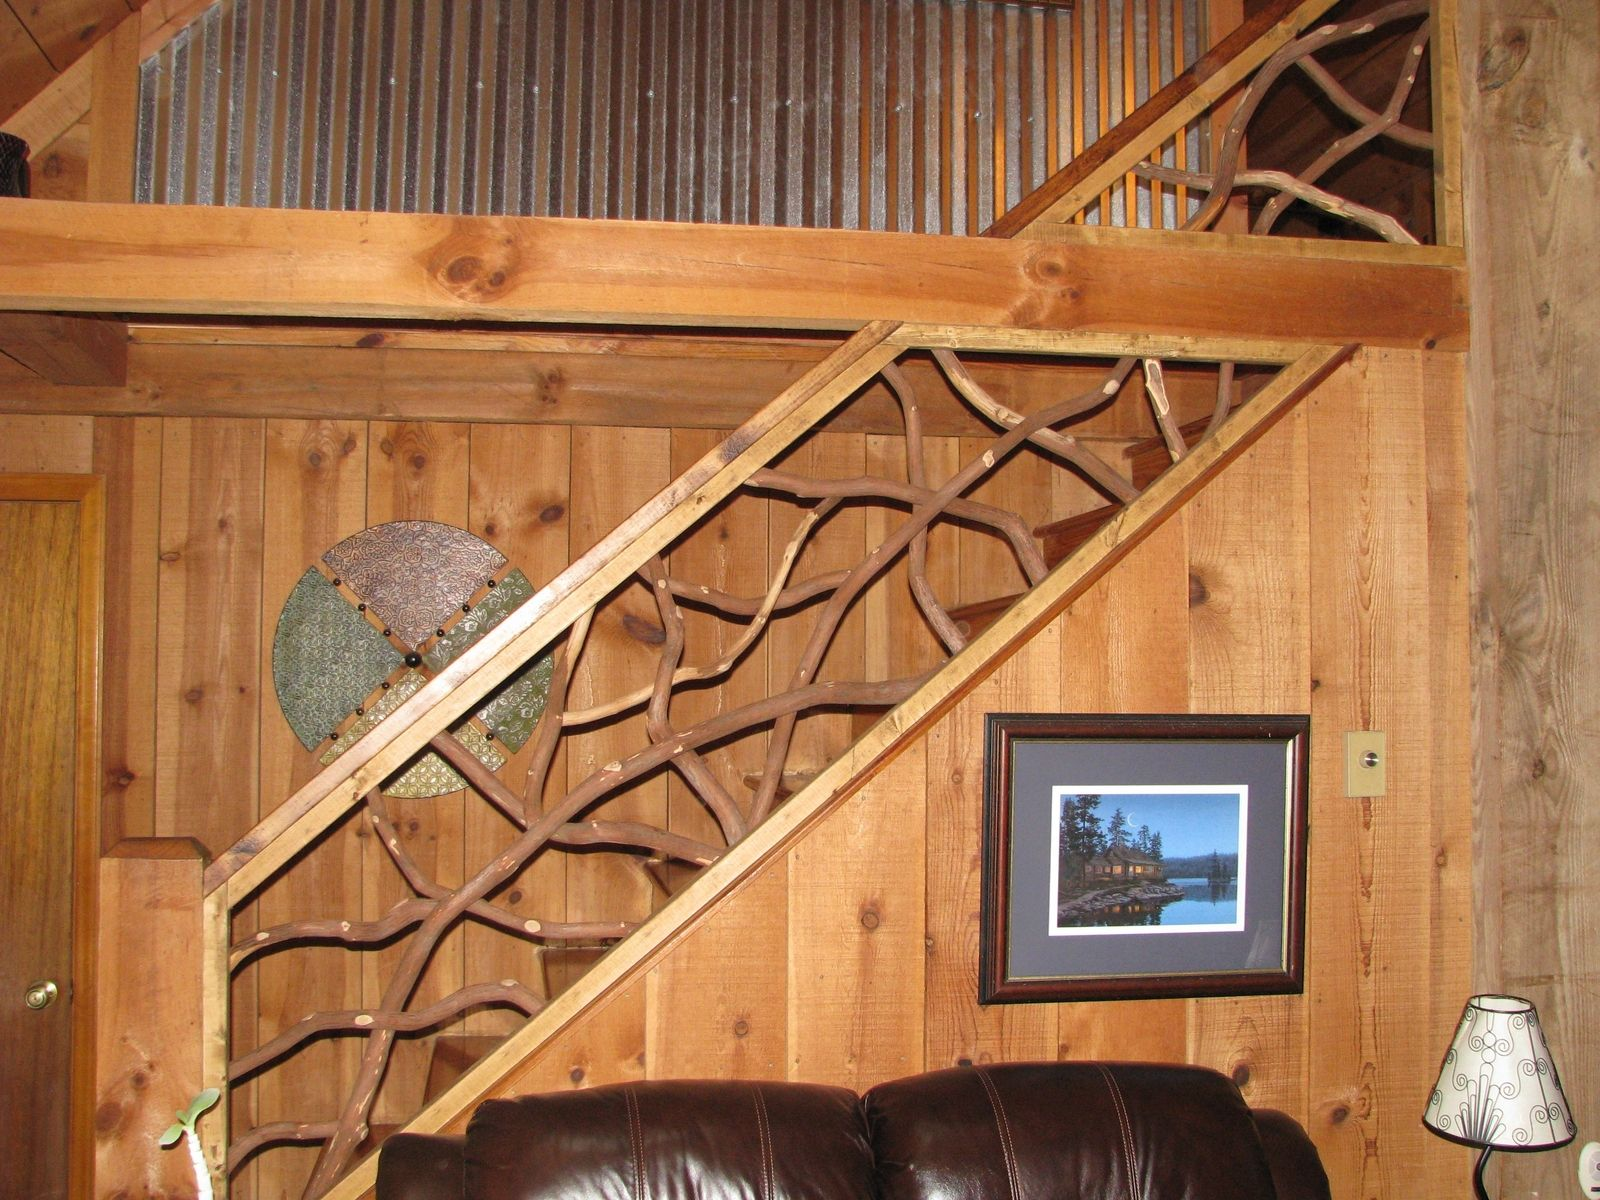 Handmade Mountain Laurel Interior Railing With Distressed Wood Hand Rails By Rhodo Creations